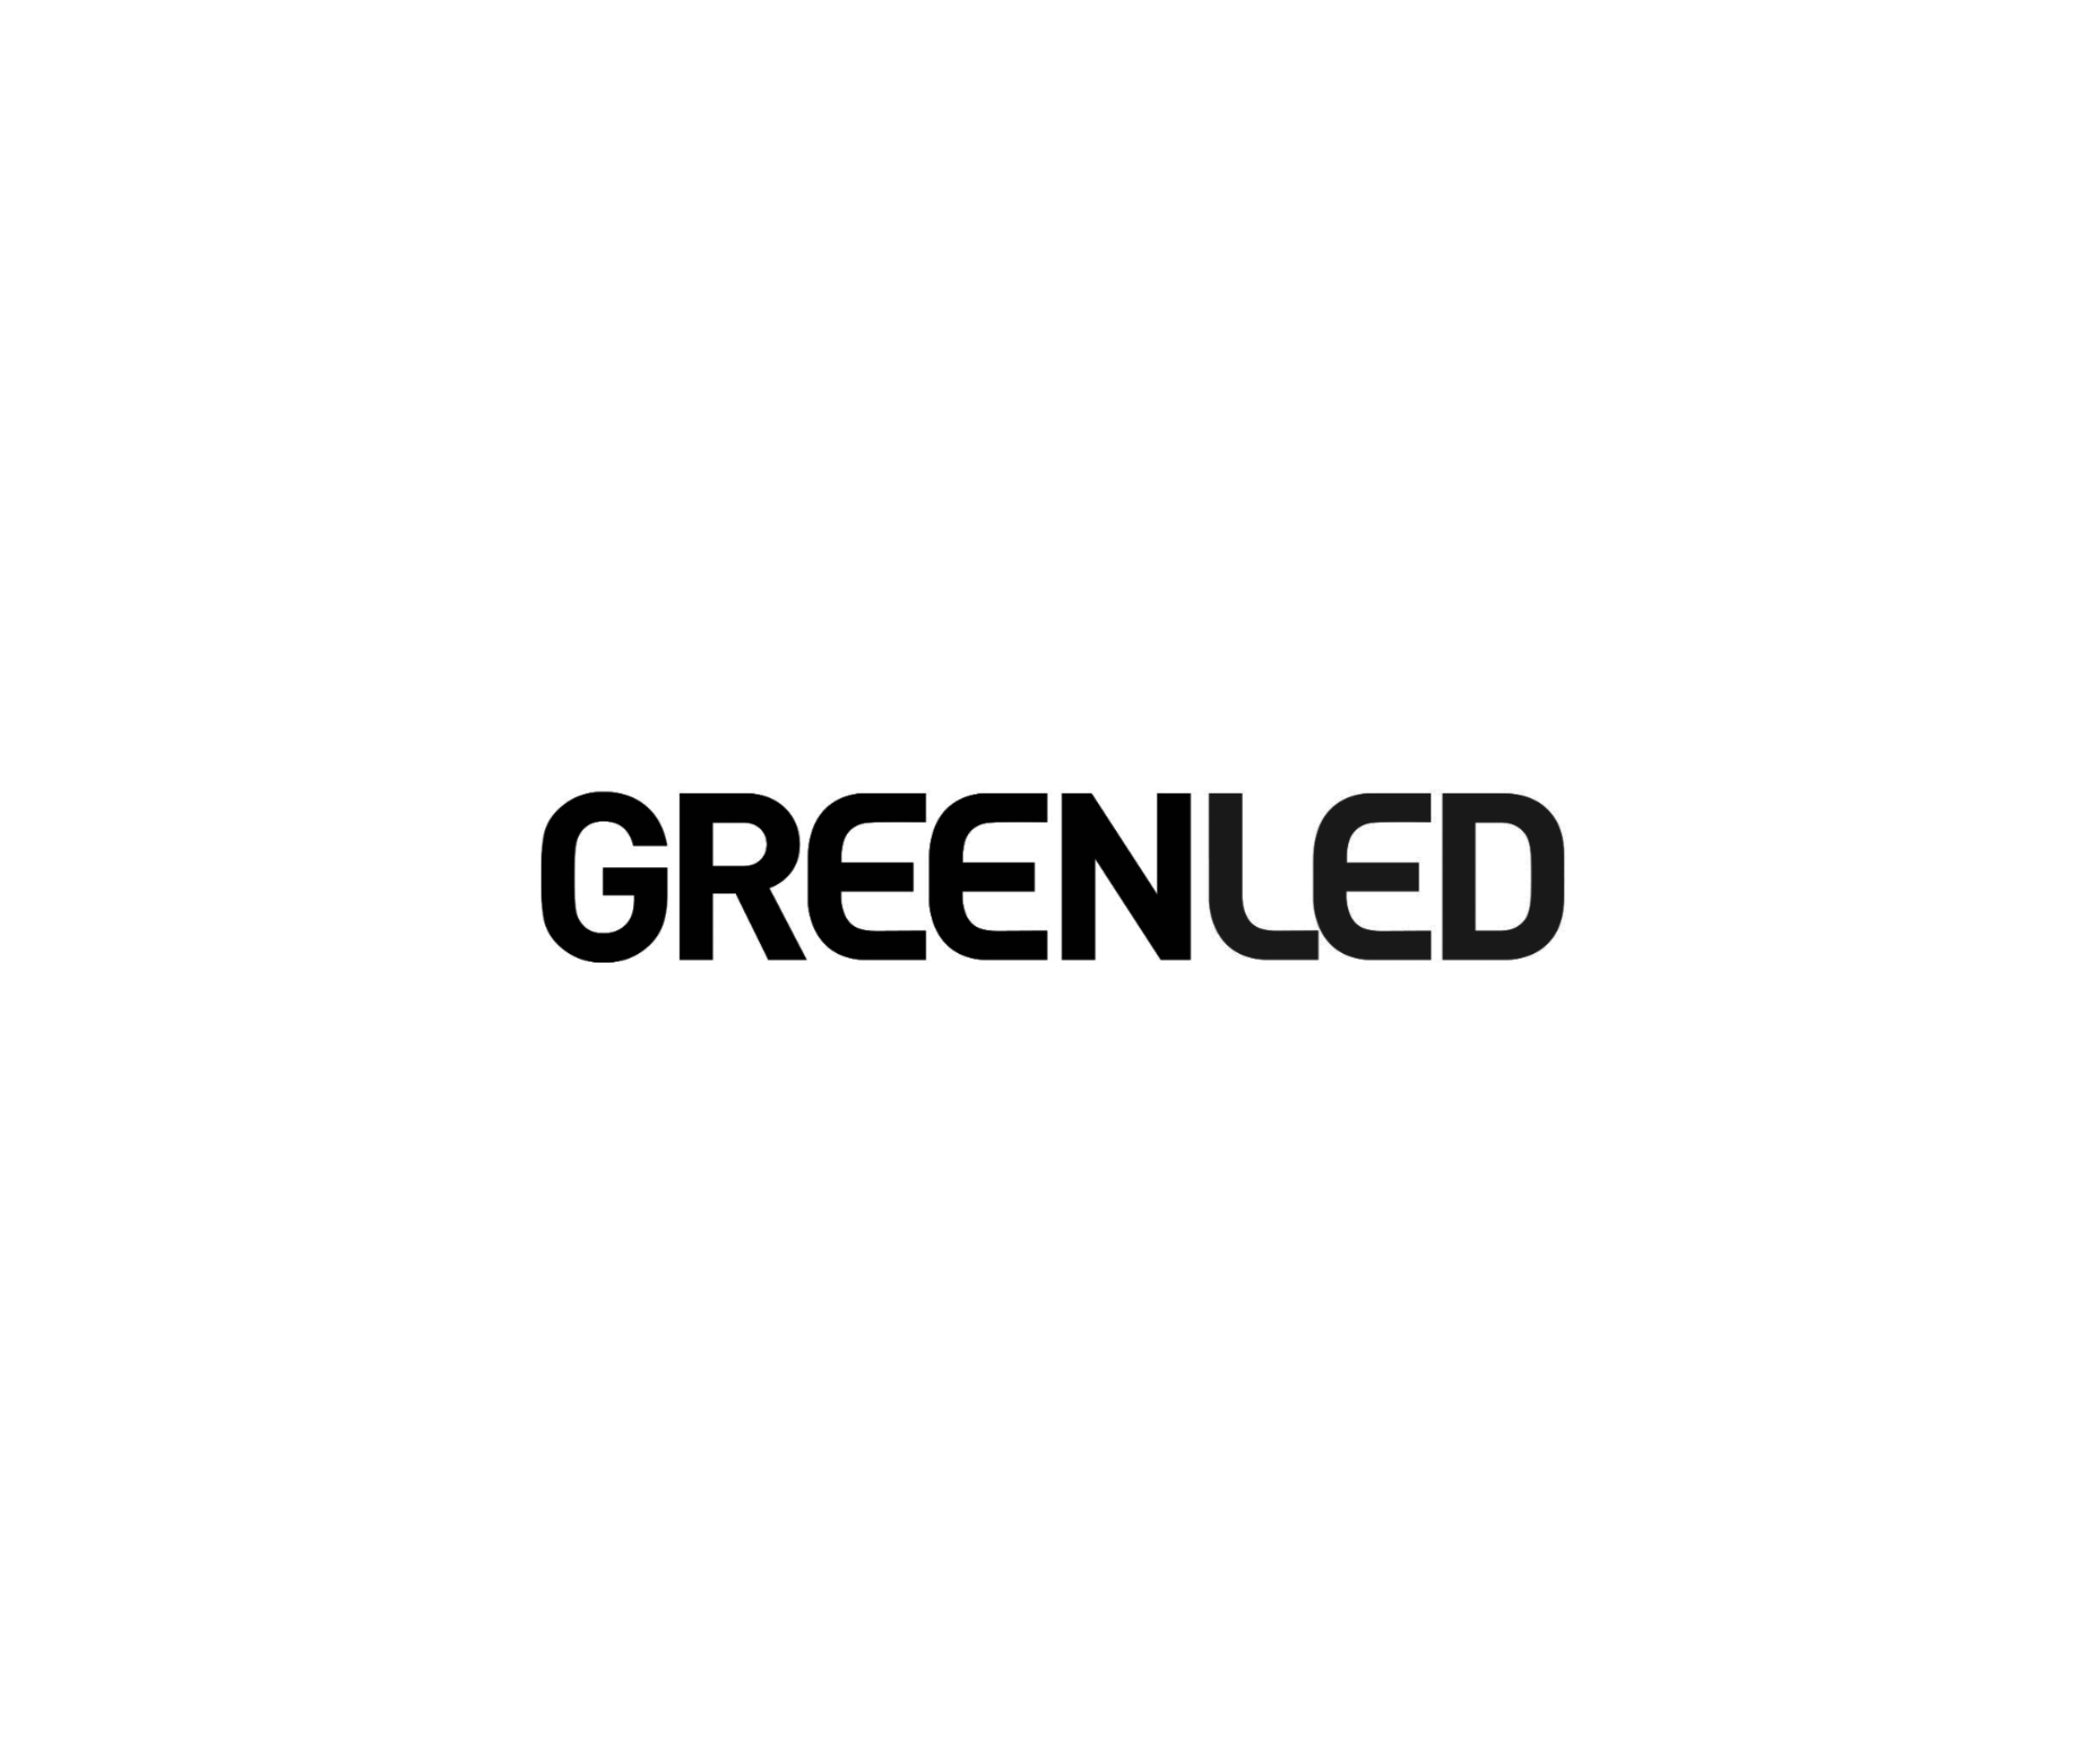 greenled_white.png